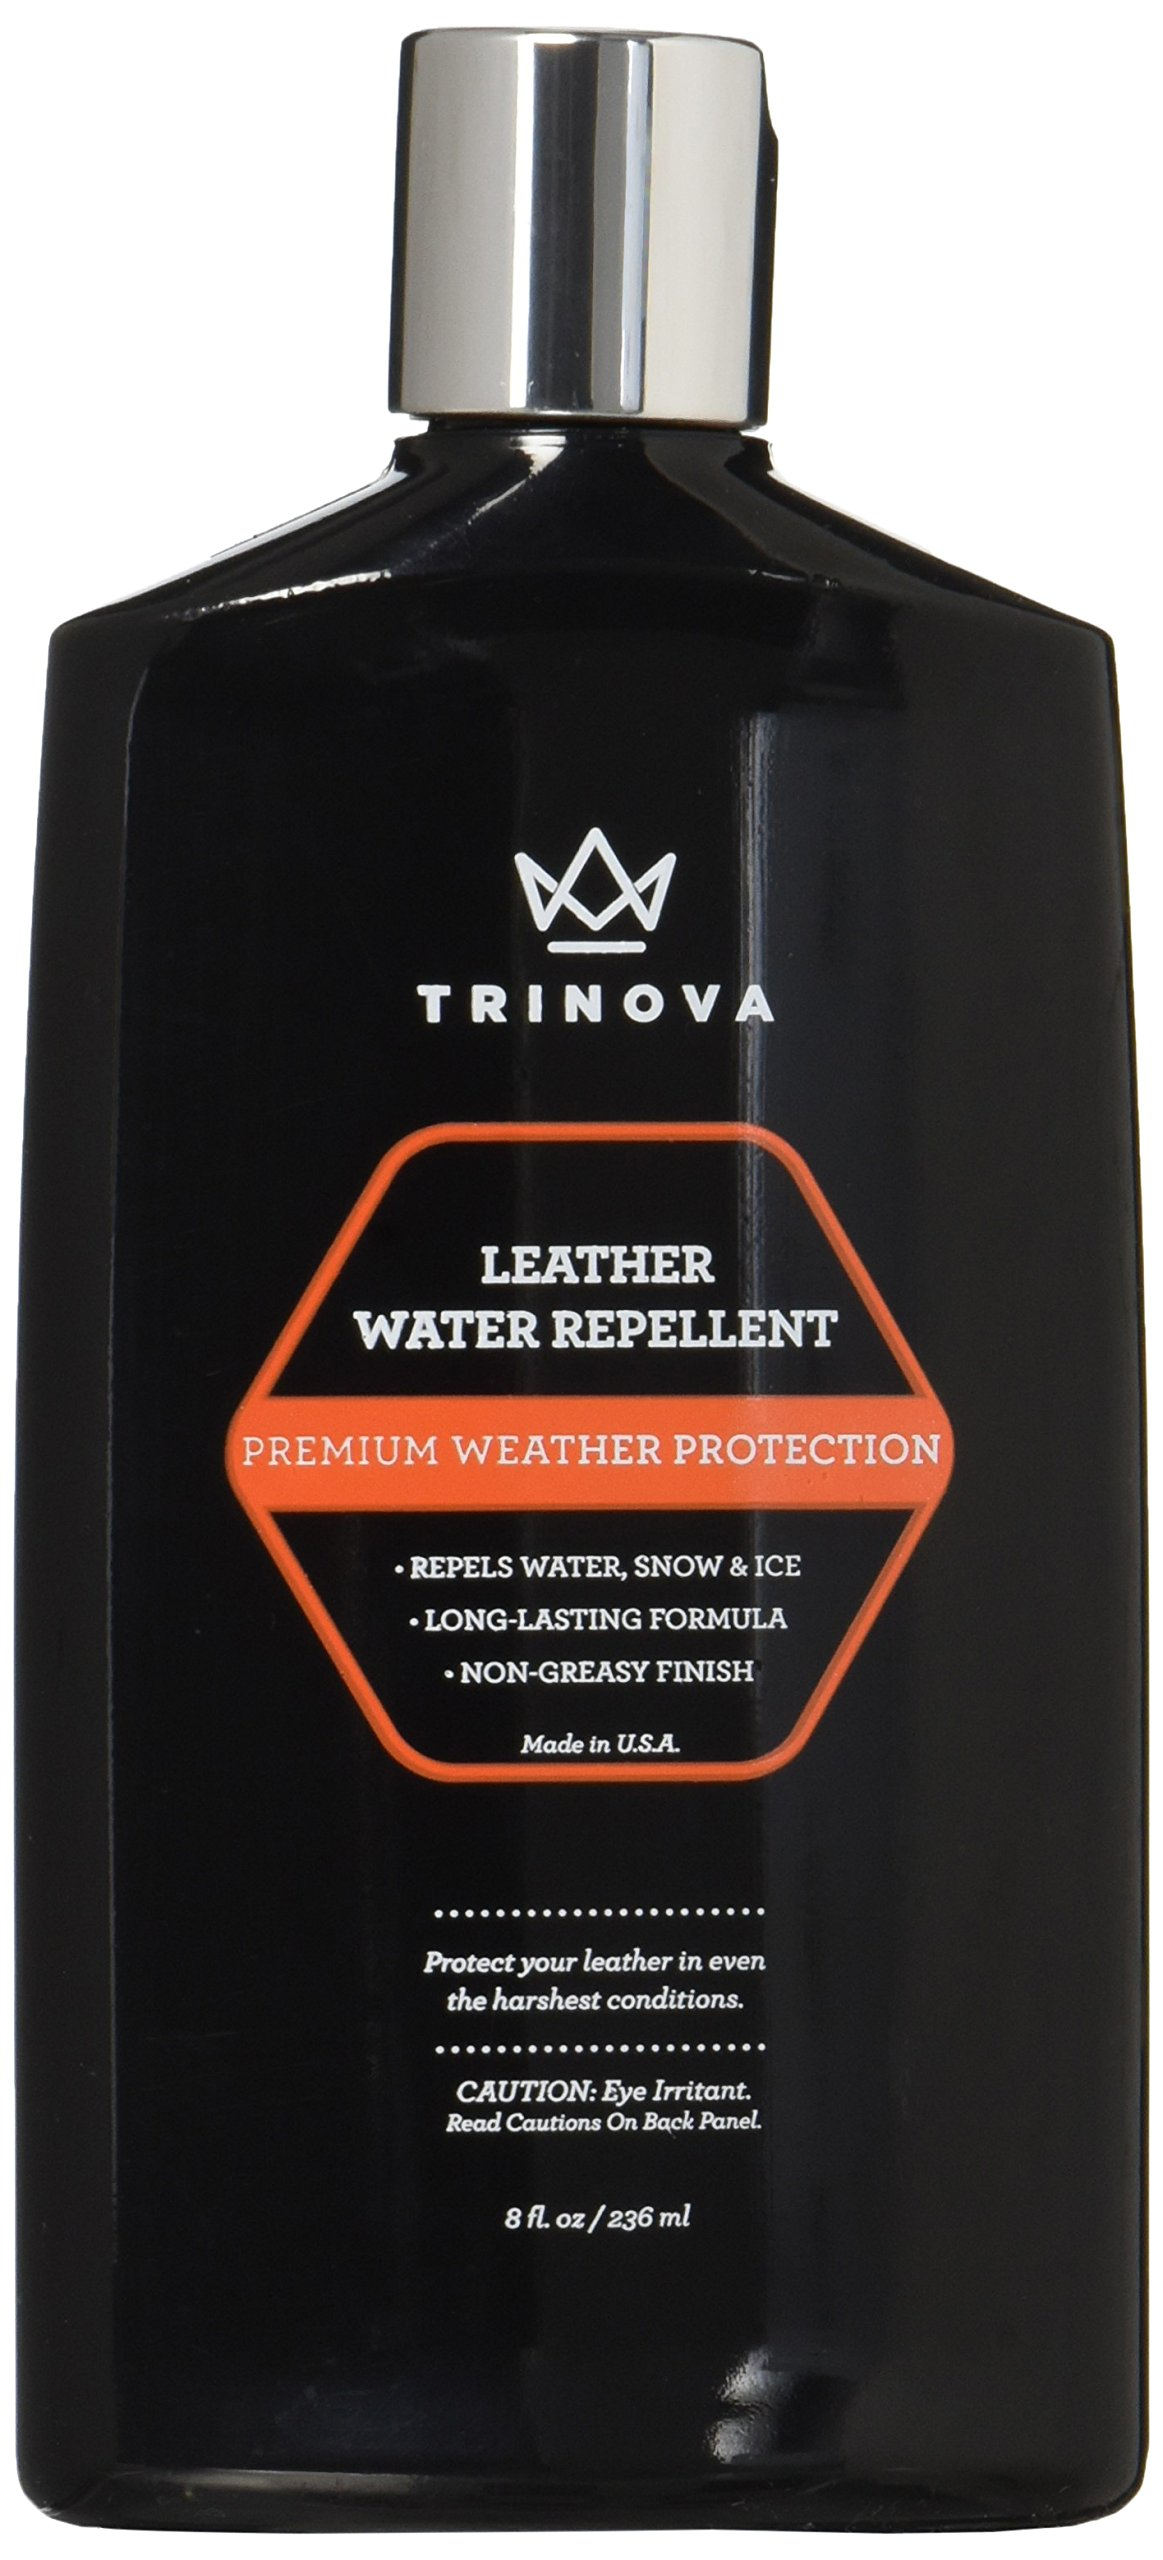 Leather Water Repellent & Protectant – Snow and Waterproofing Treatment for Shoes, Jackets – Rain & Weather Protectant Coating - 8 OZ - TriNova